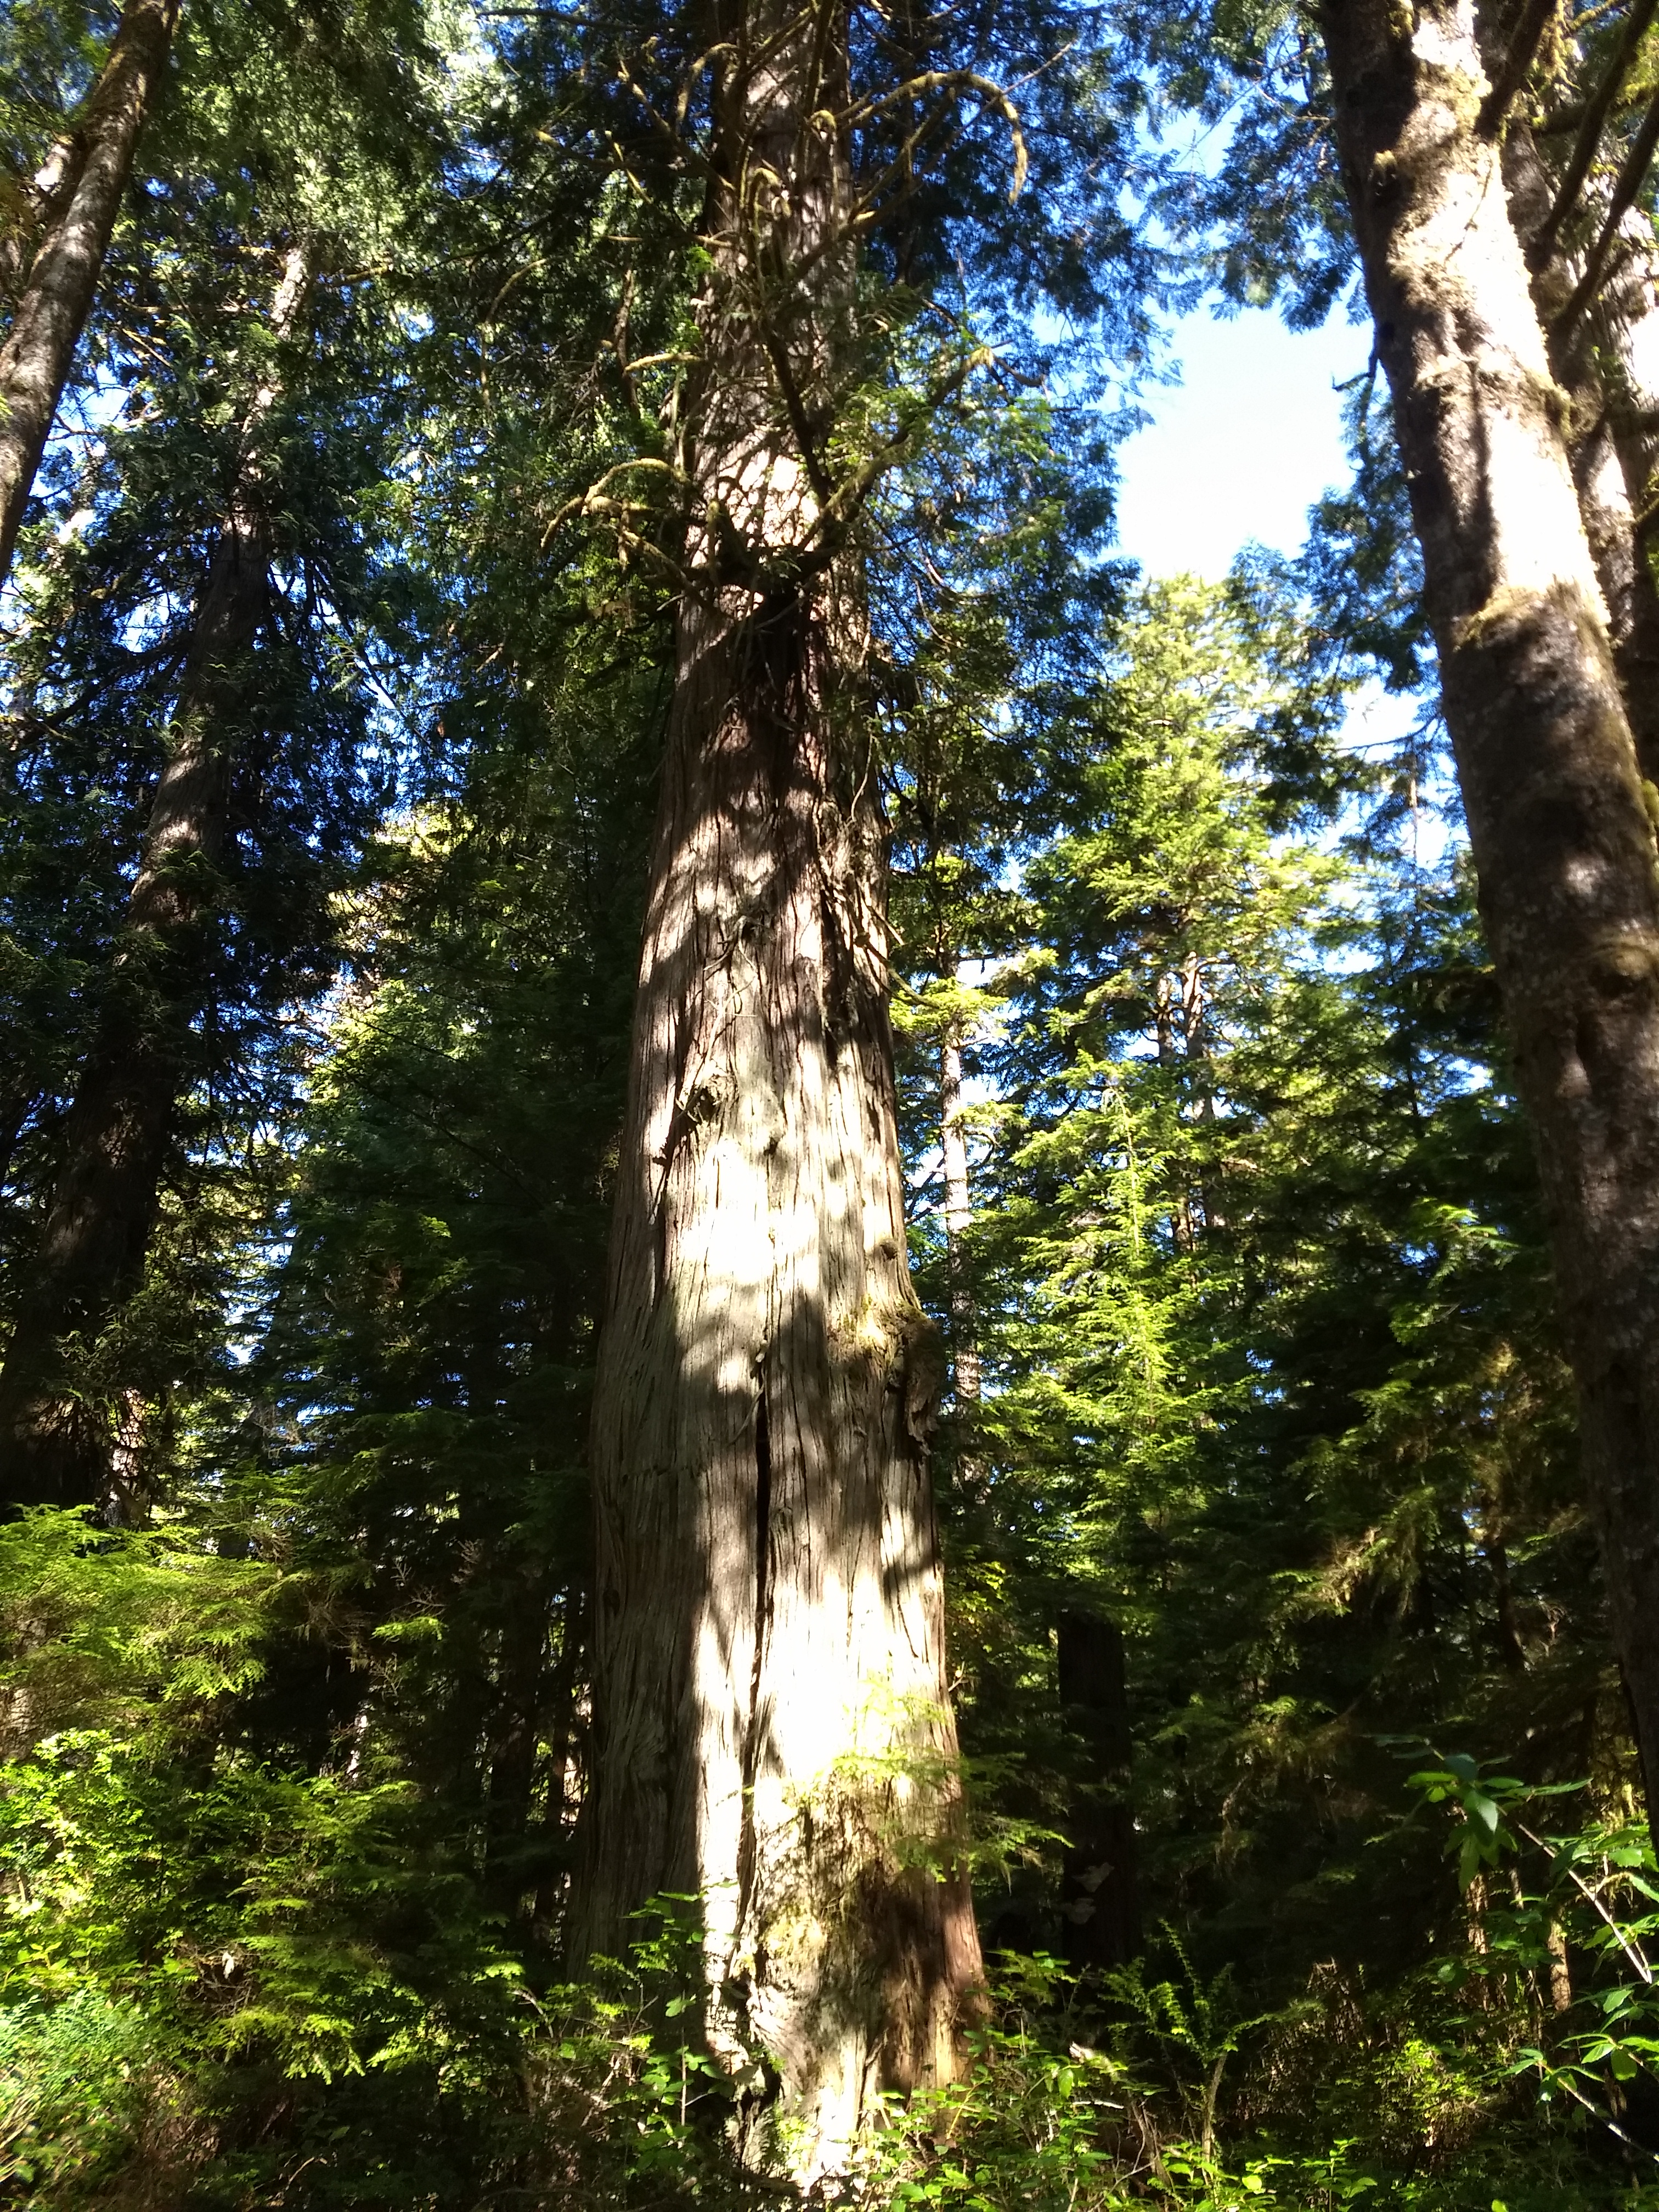 Large old growth trees in this area